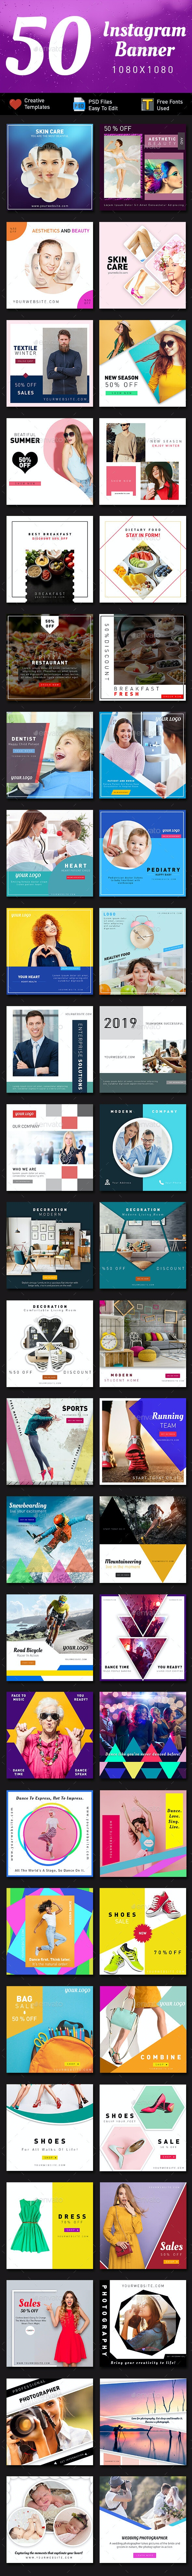 Instagram Banners - 50 Banners - Graphics